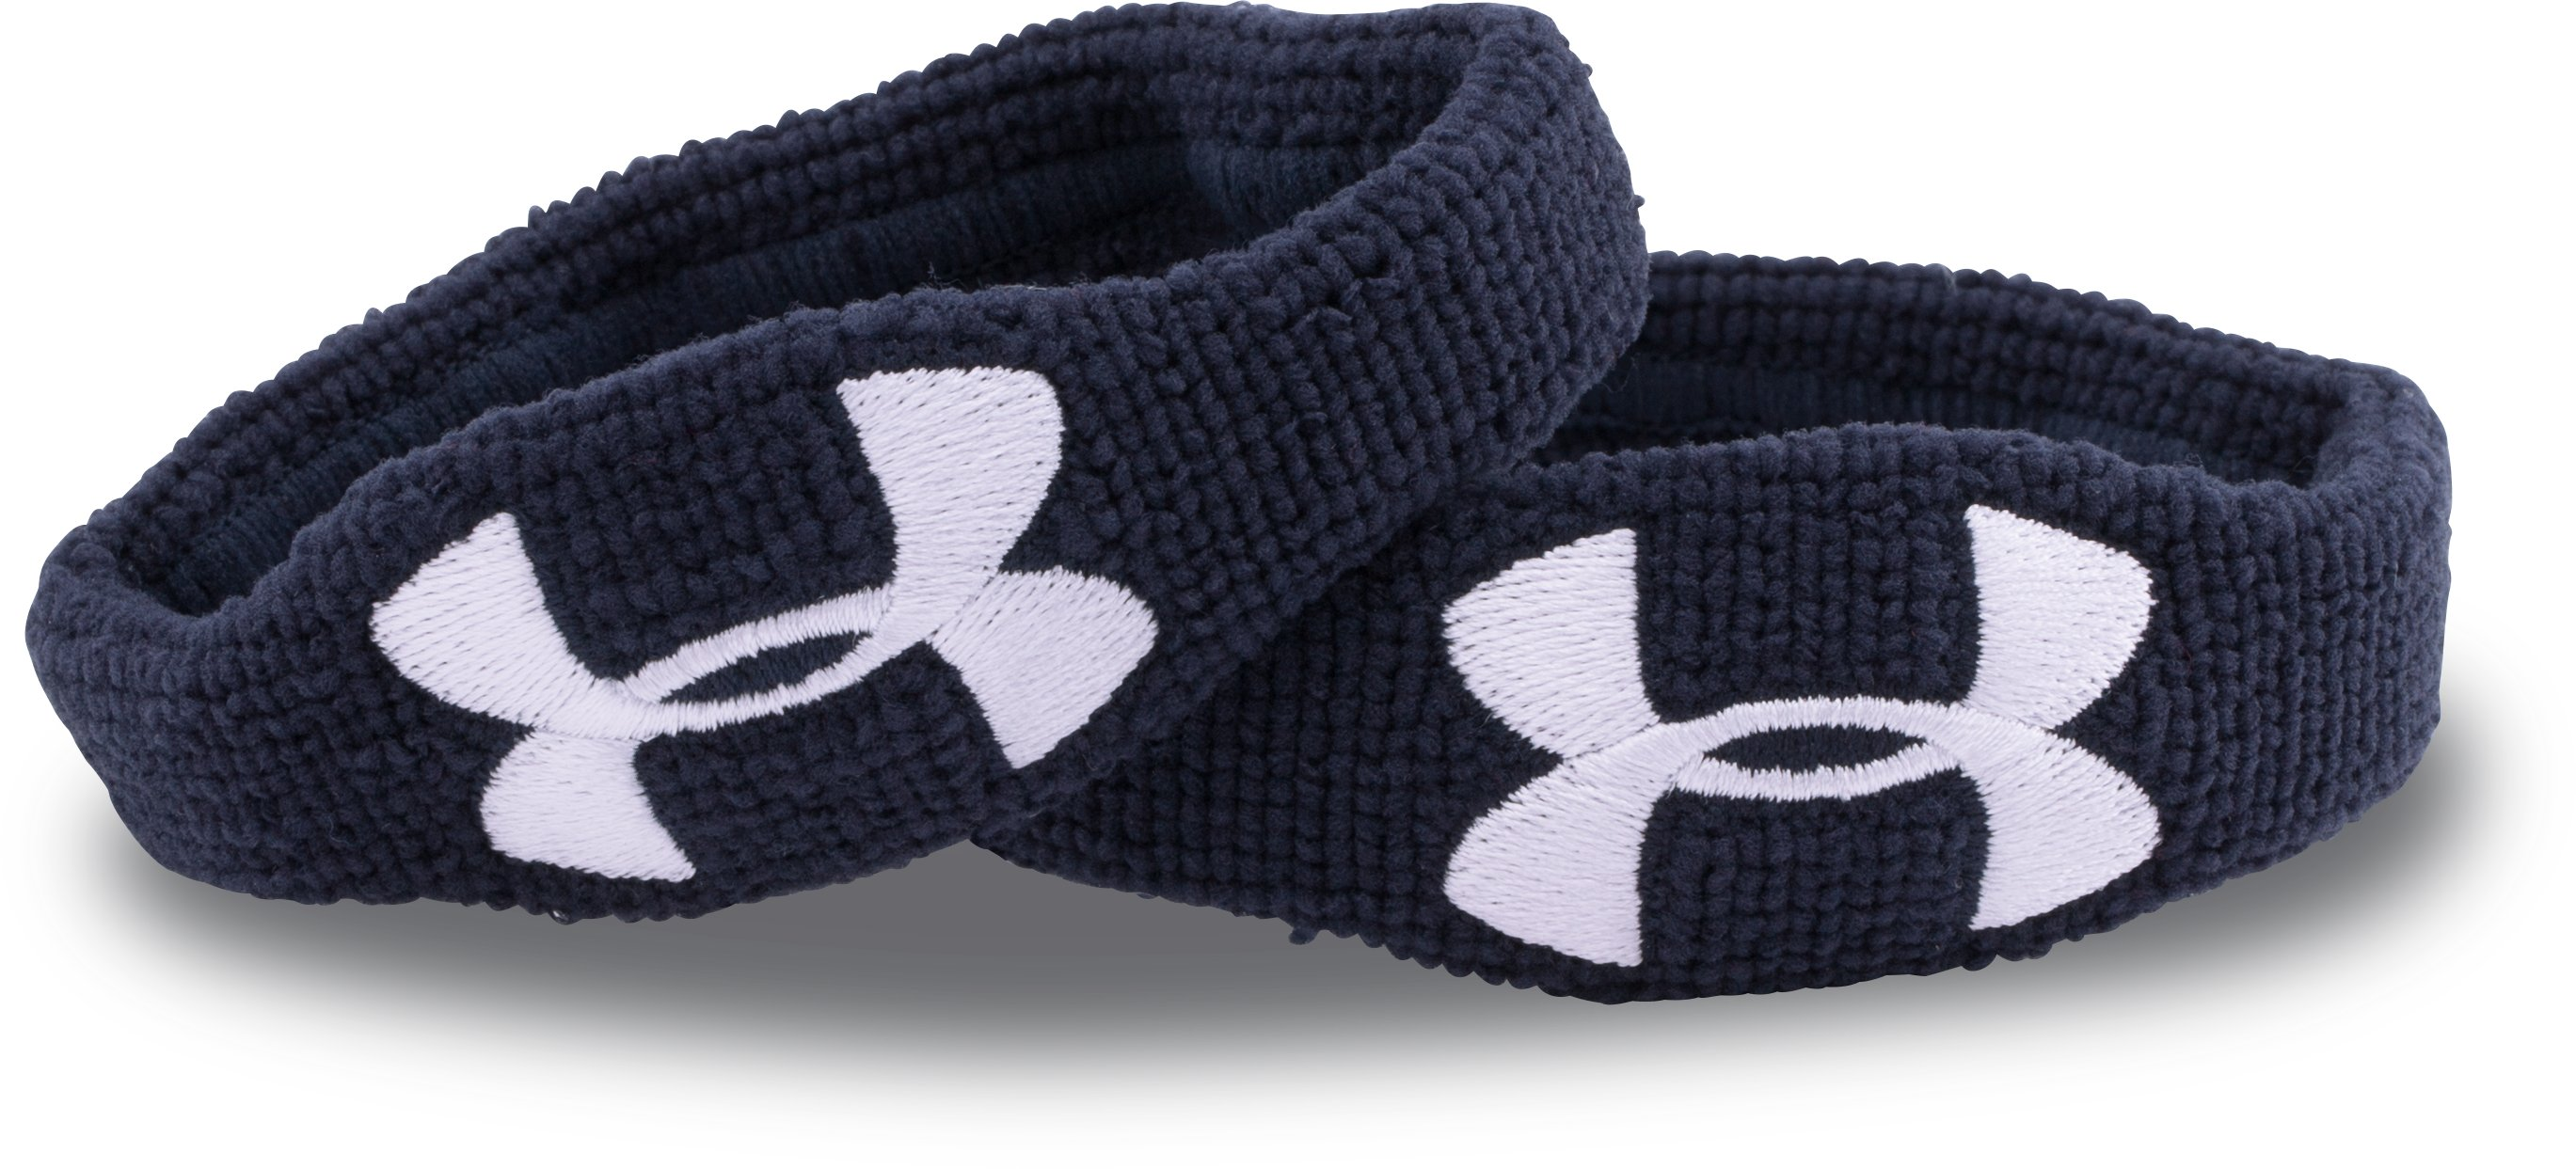 "UA 1/2"" Performance Wristband – 2-Pack, Midnight Navy, undefined"